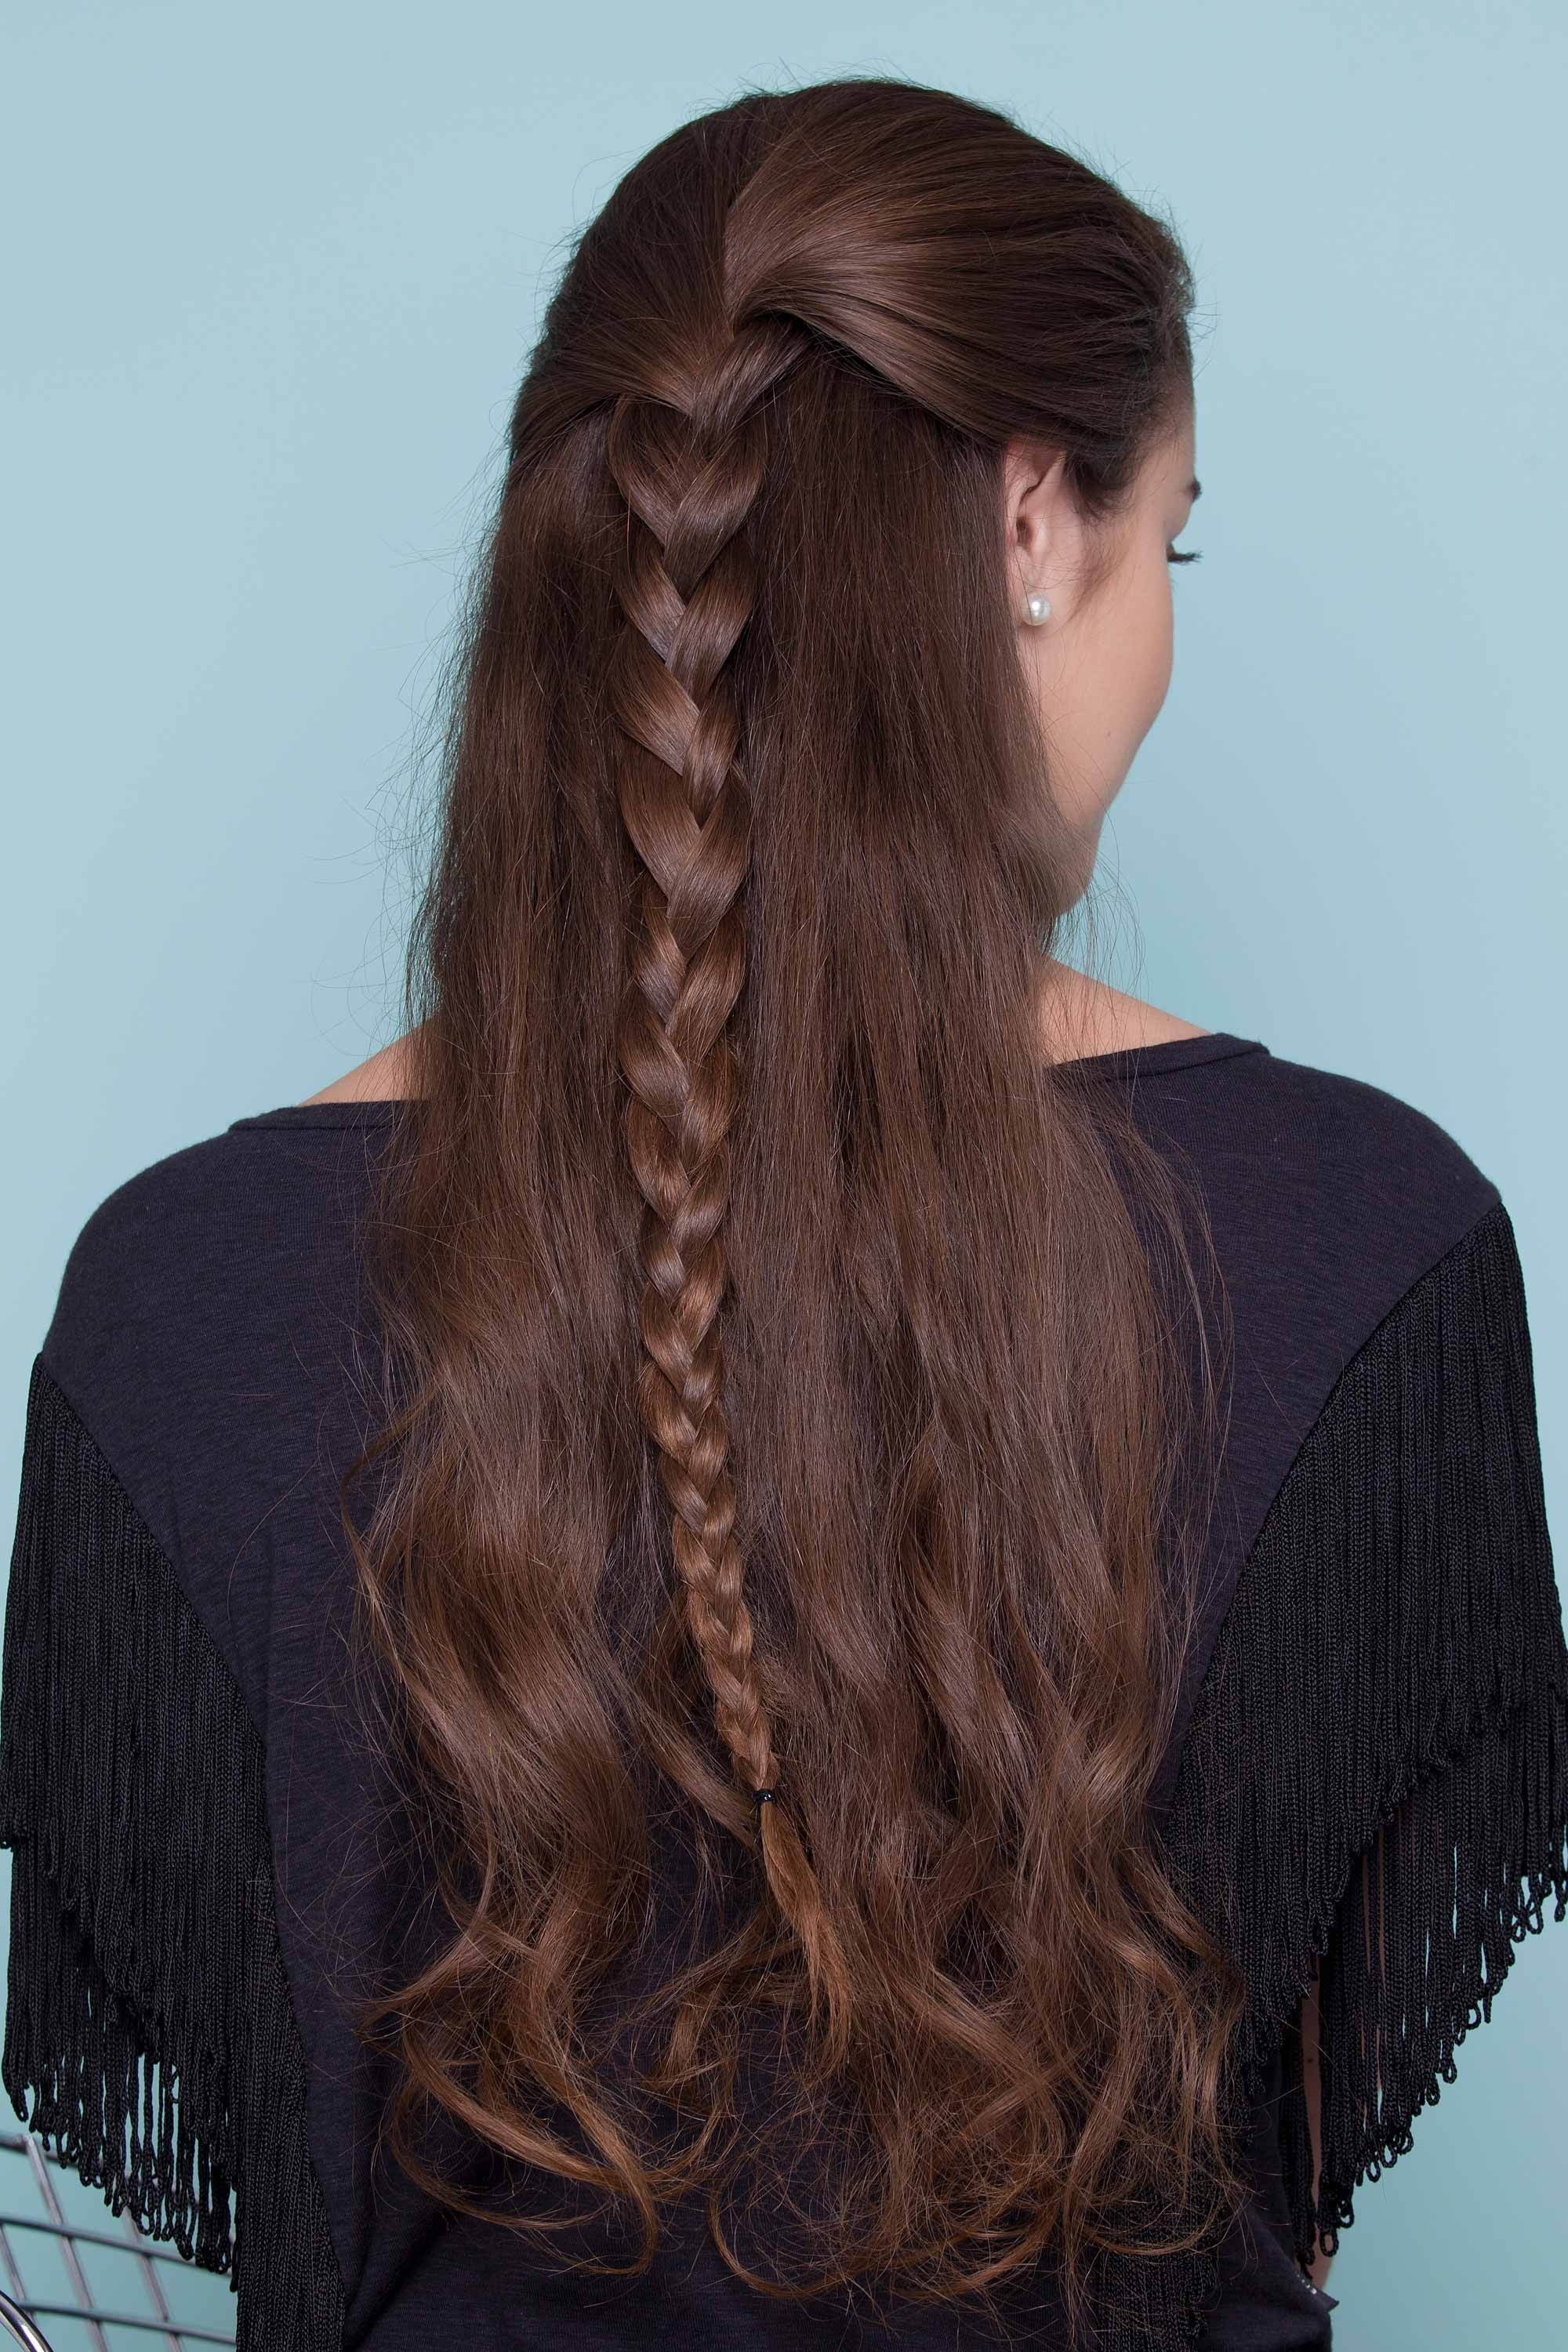 Half Braided Hairstyles: 44 Pretty, Super Flattering Looks Regarding Recent Braided Millennial Pink Pony Hairstyles (View 9 of 20)